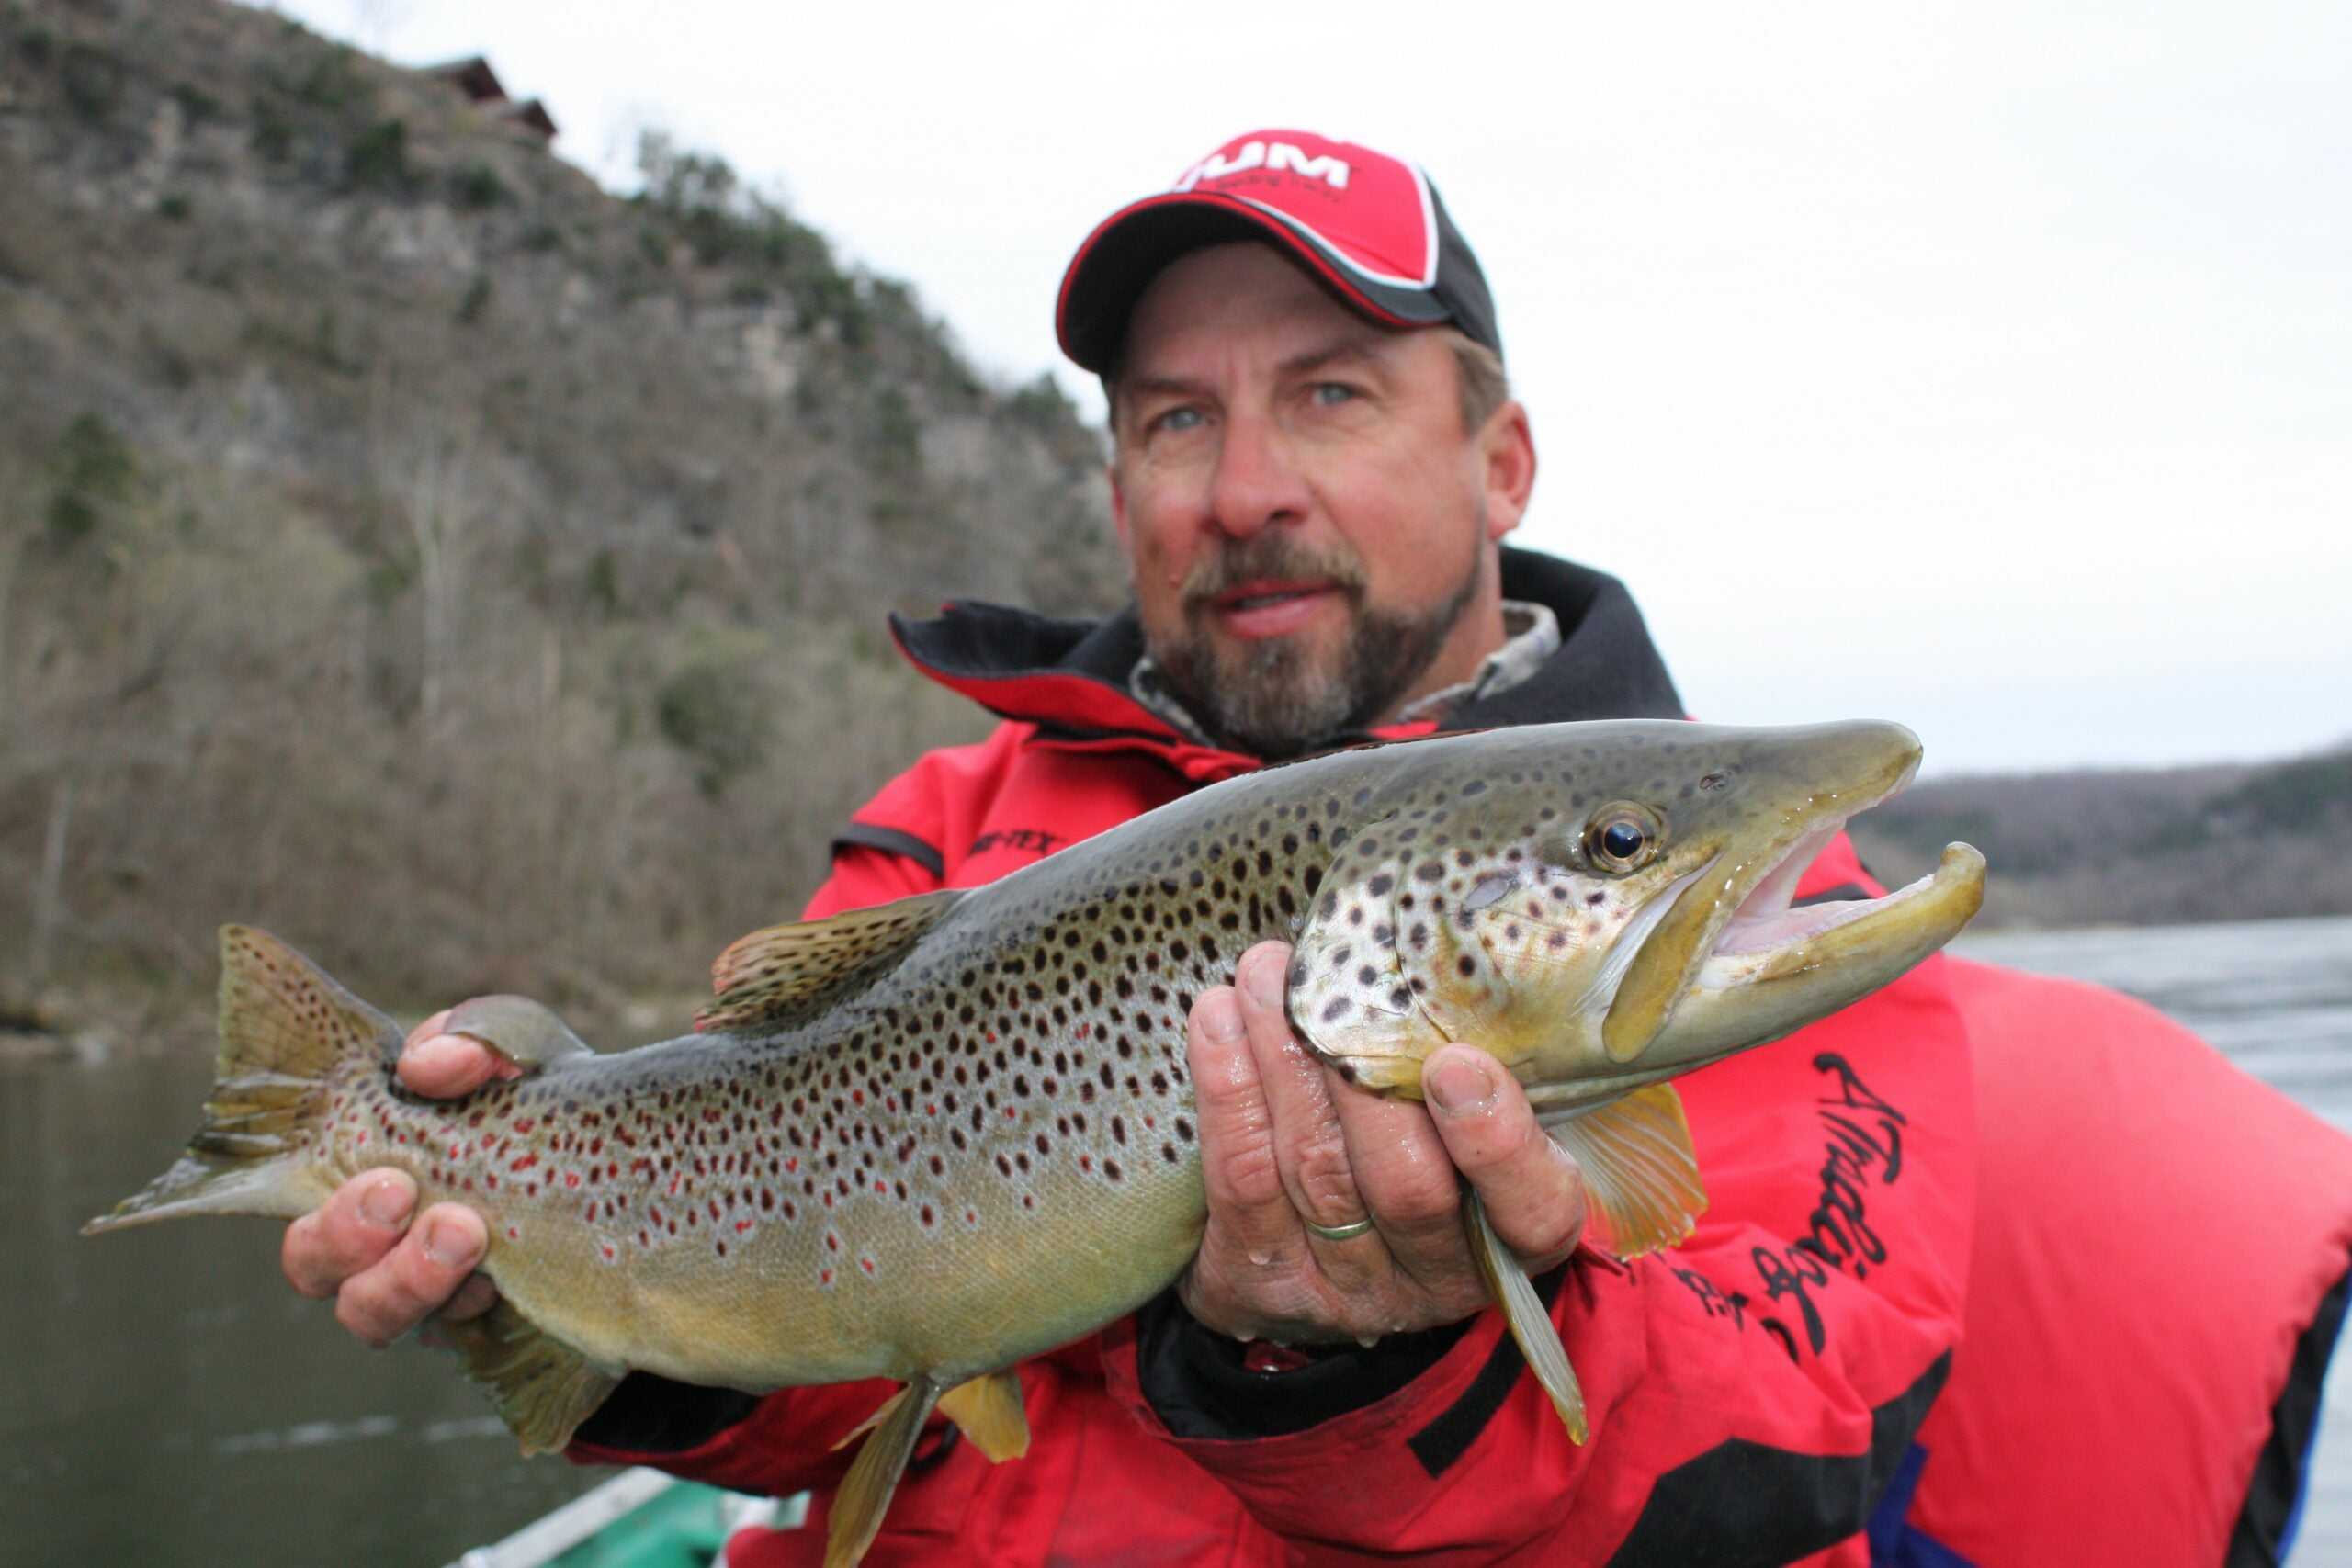 Trip Report: Big Brown Trout On The White River